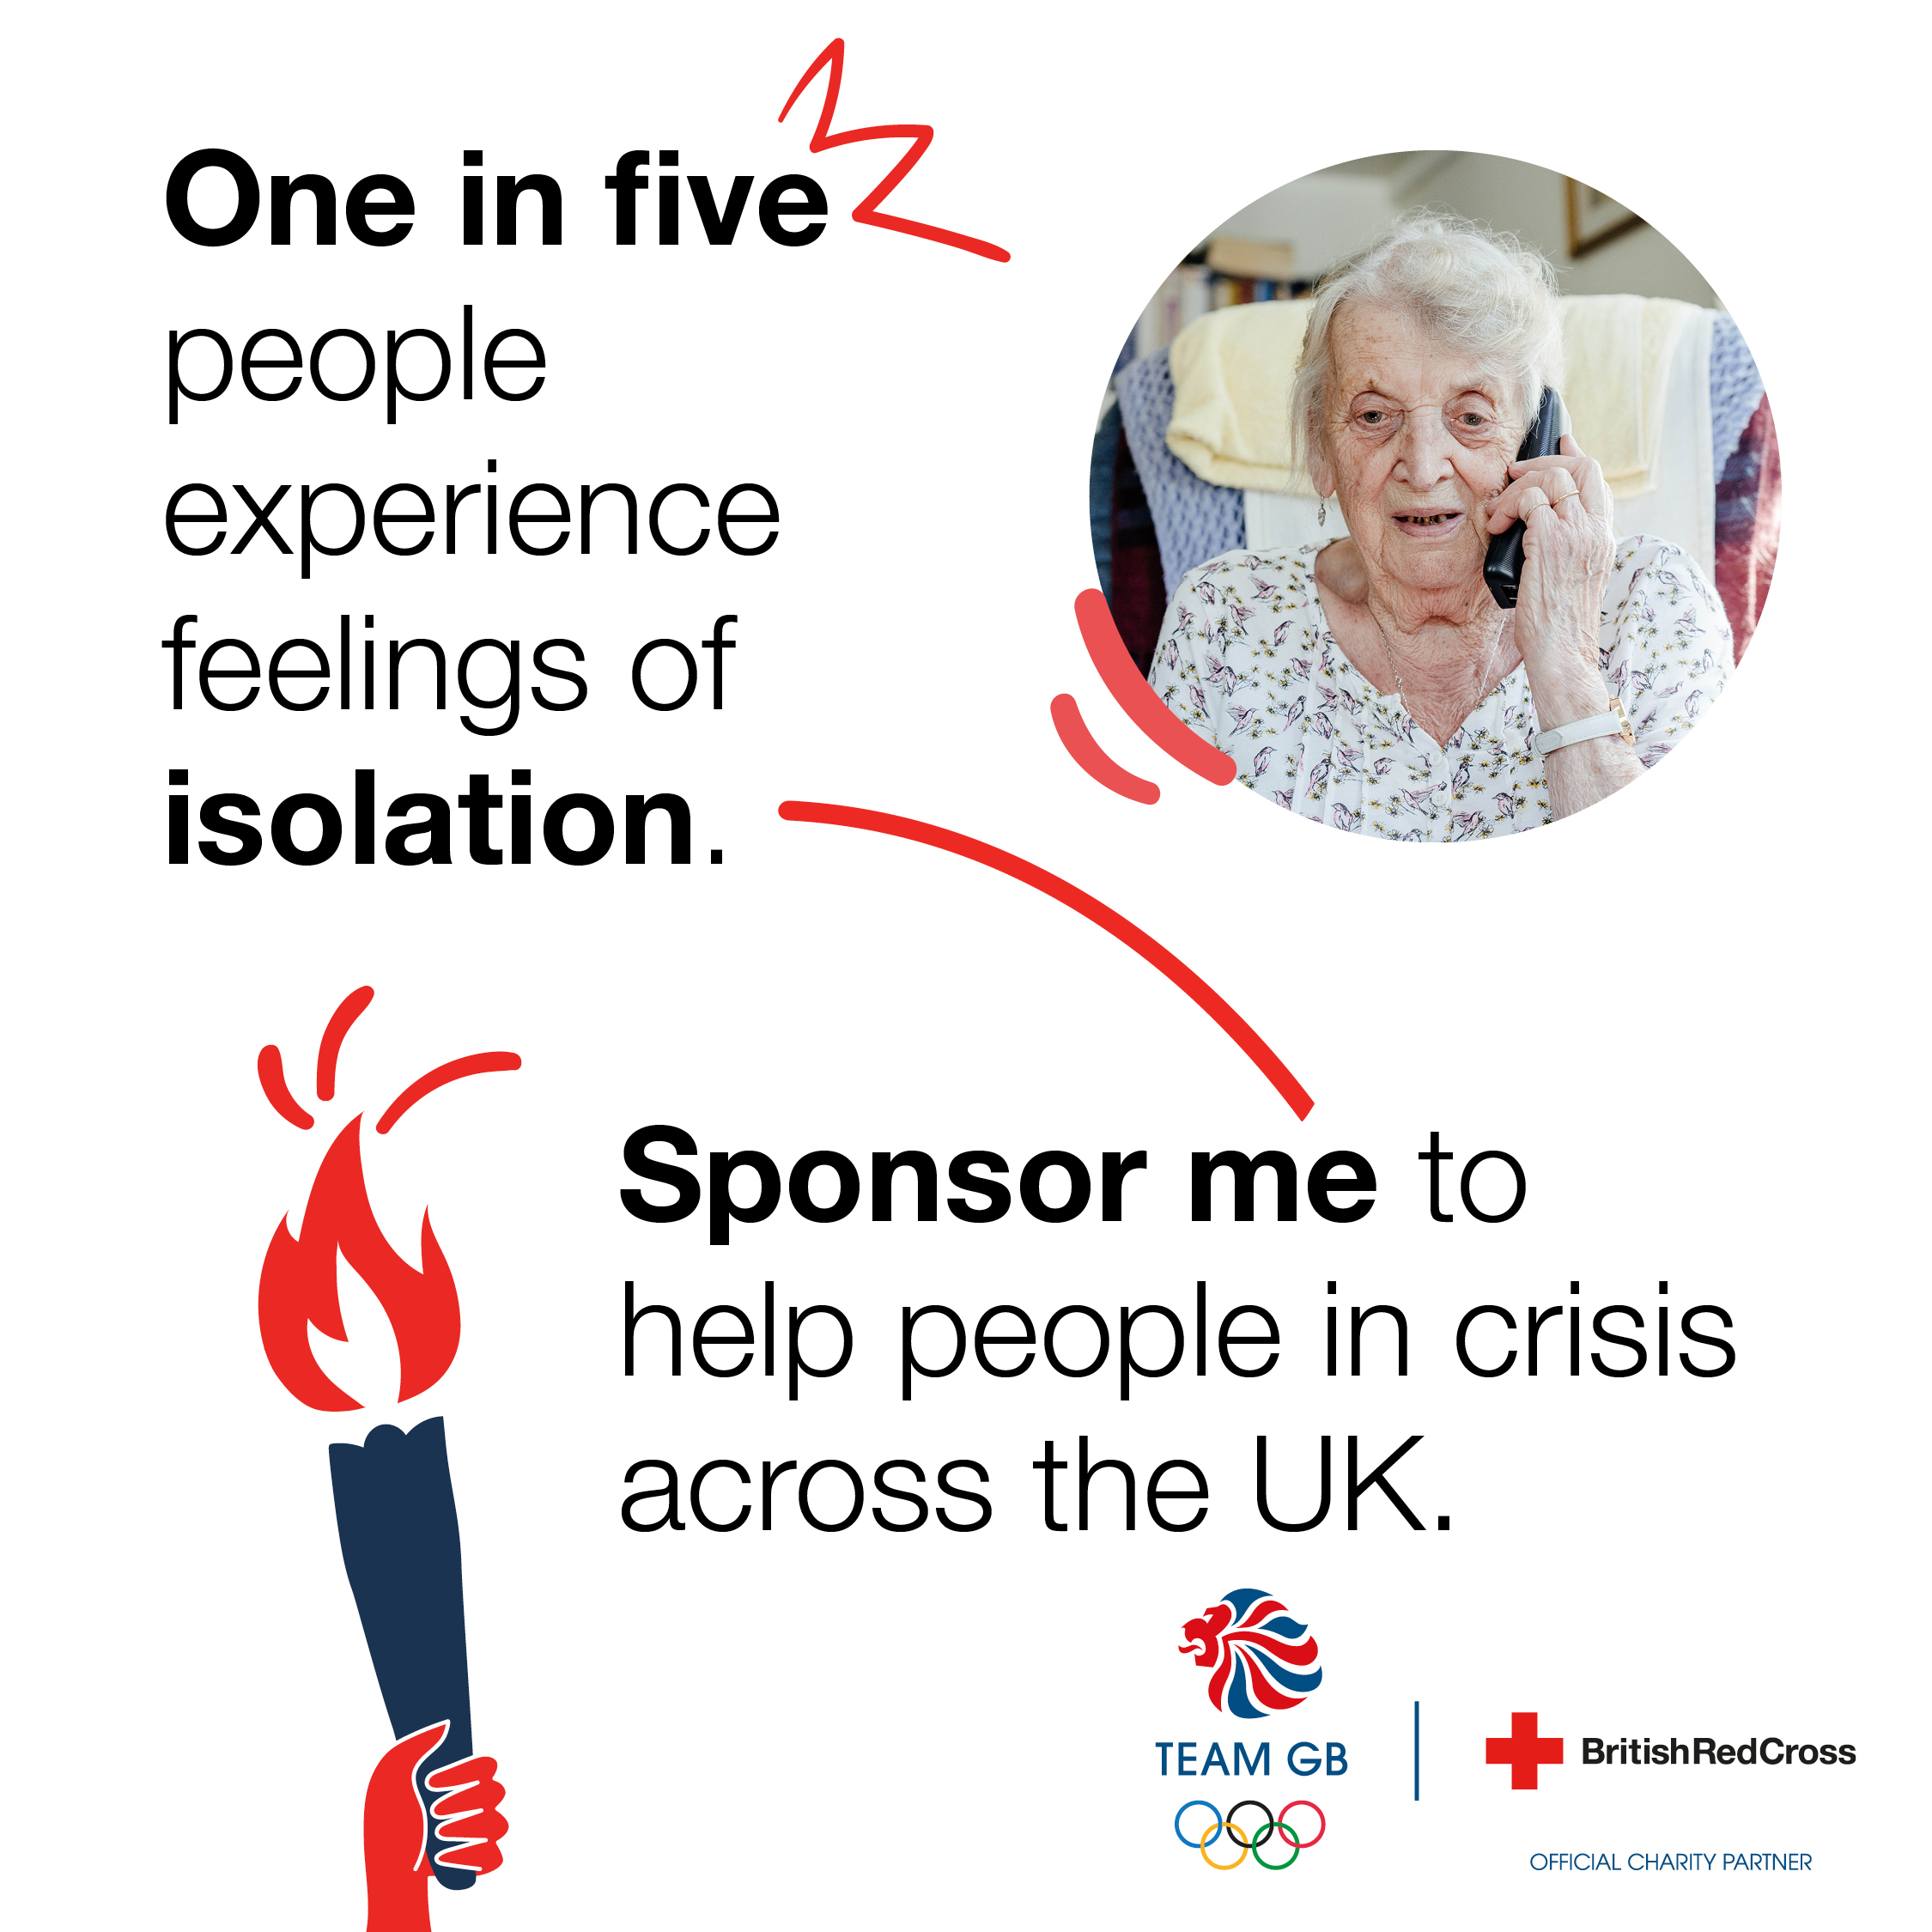 Image with the following text on:  One in five people experience feelings of isolation. Sponsor me to help people in crisis across the UK.